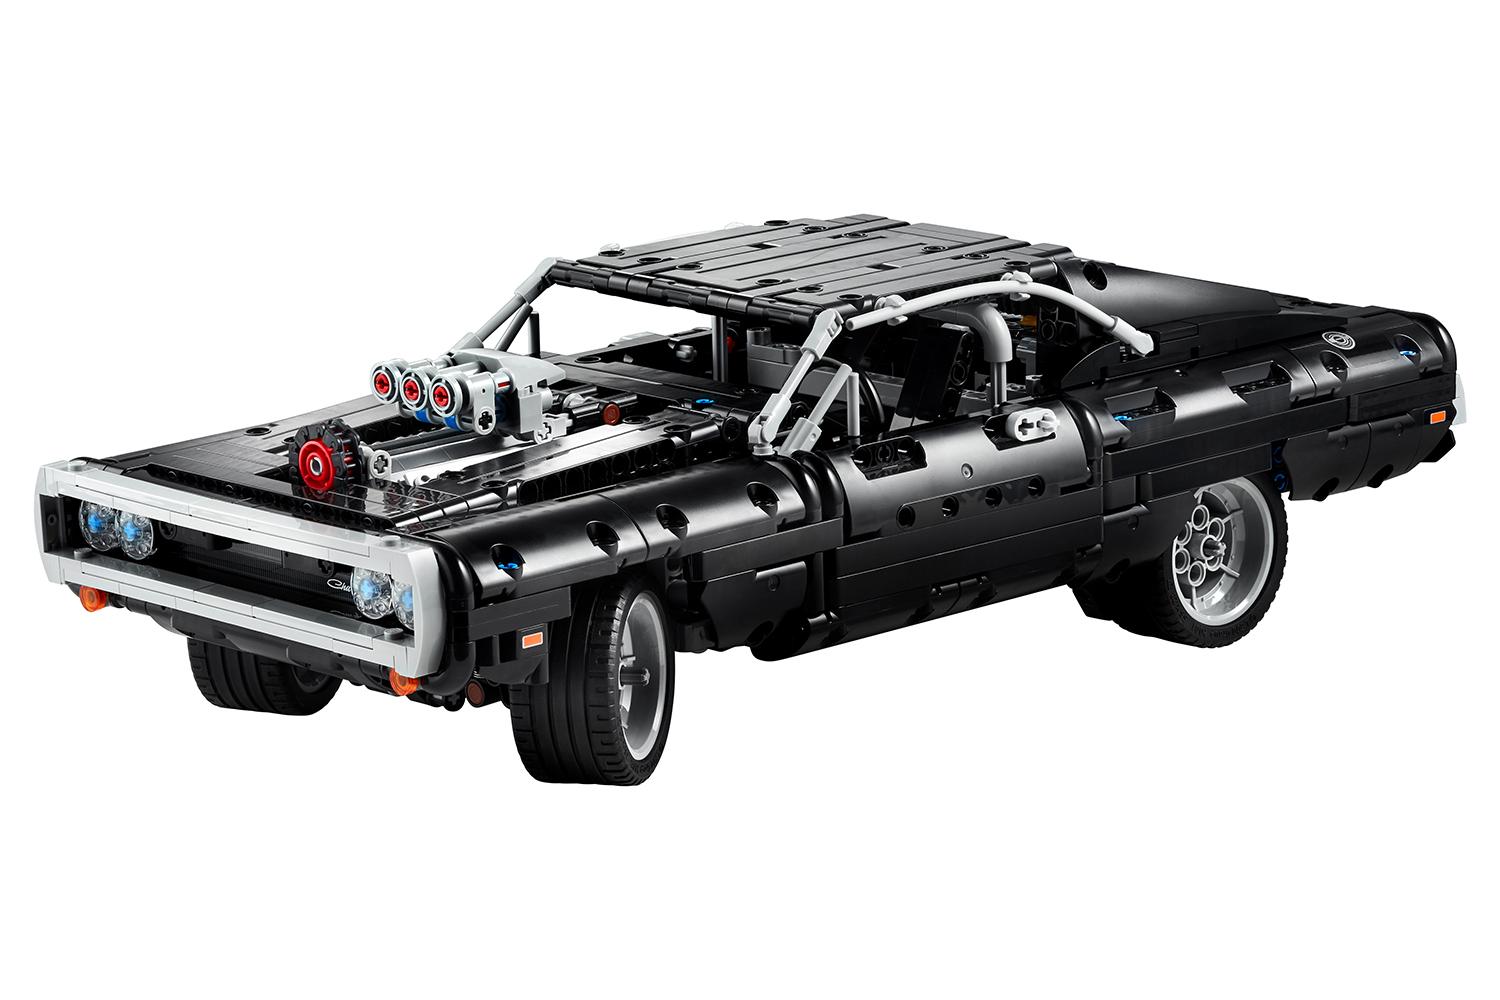 lego-technic-doms-dodge-charger-42111/